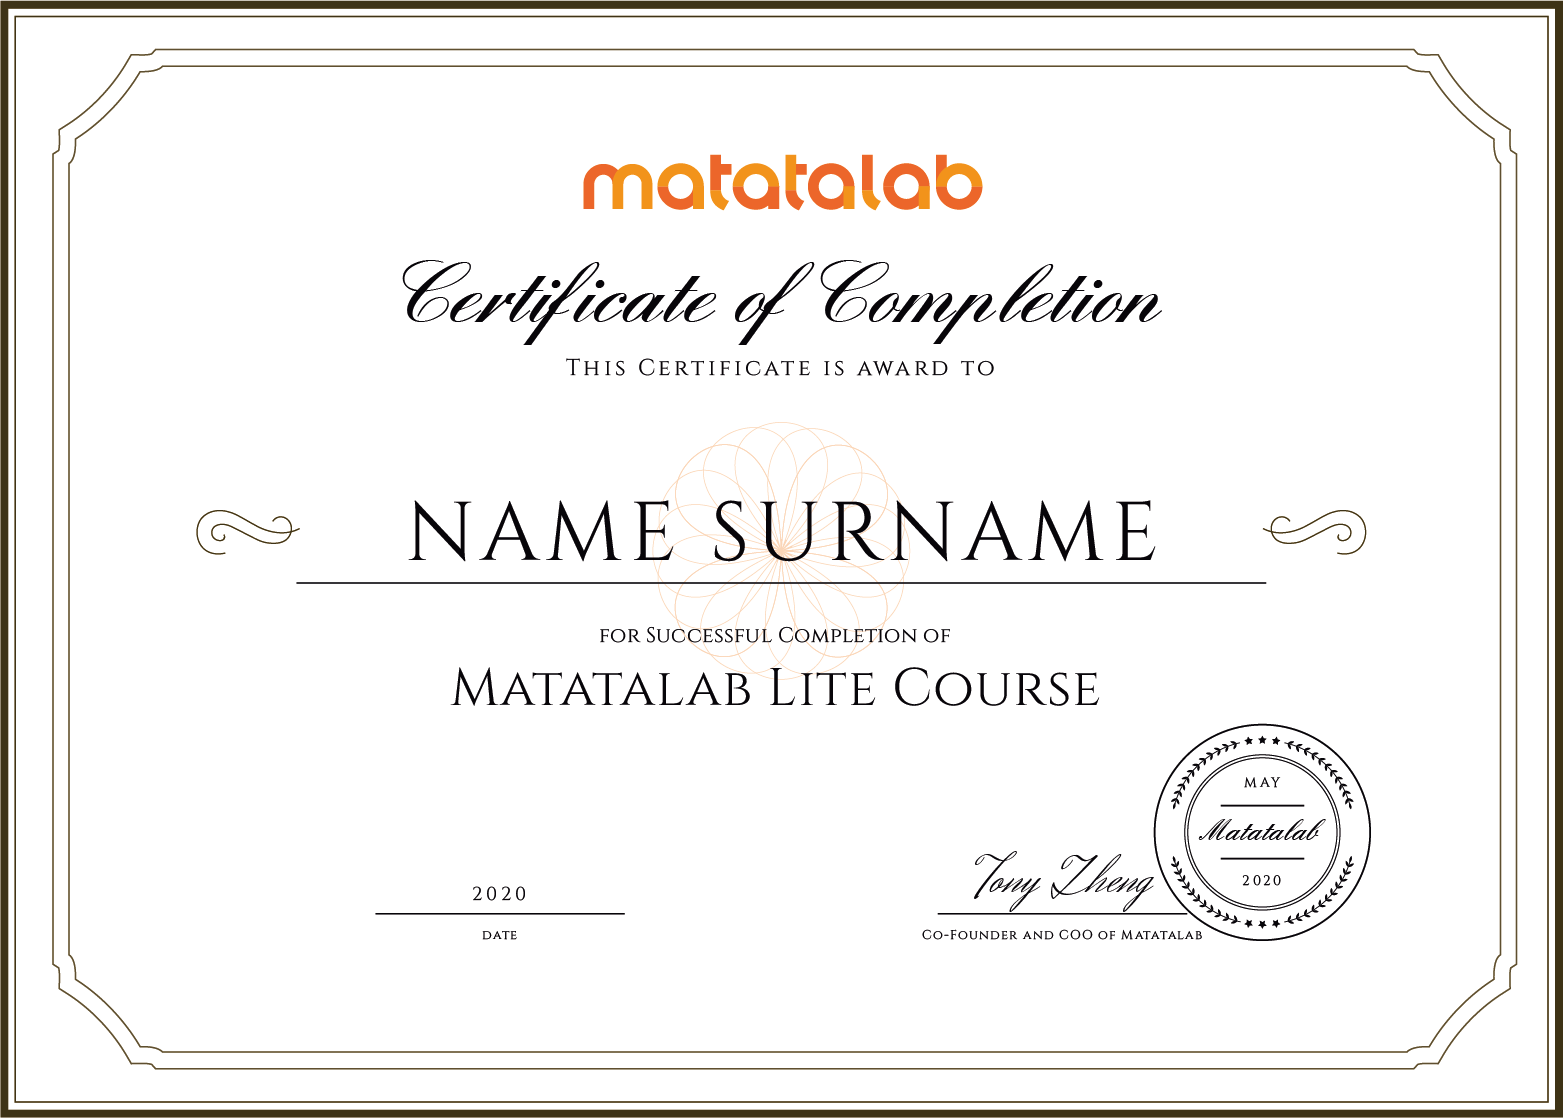 Matatalab Lite Couse - Robots for Kids - Matatalab